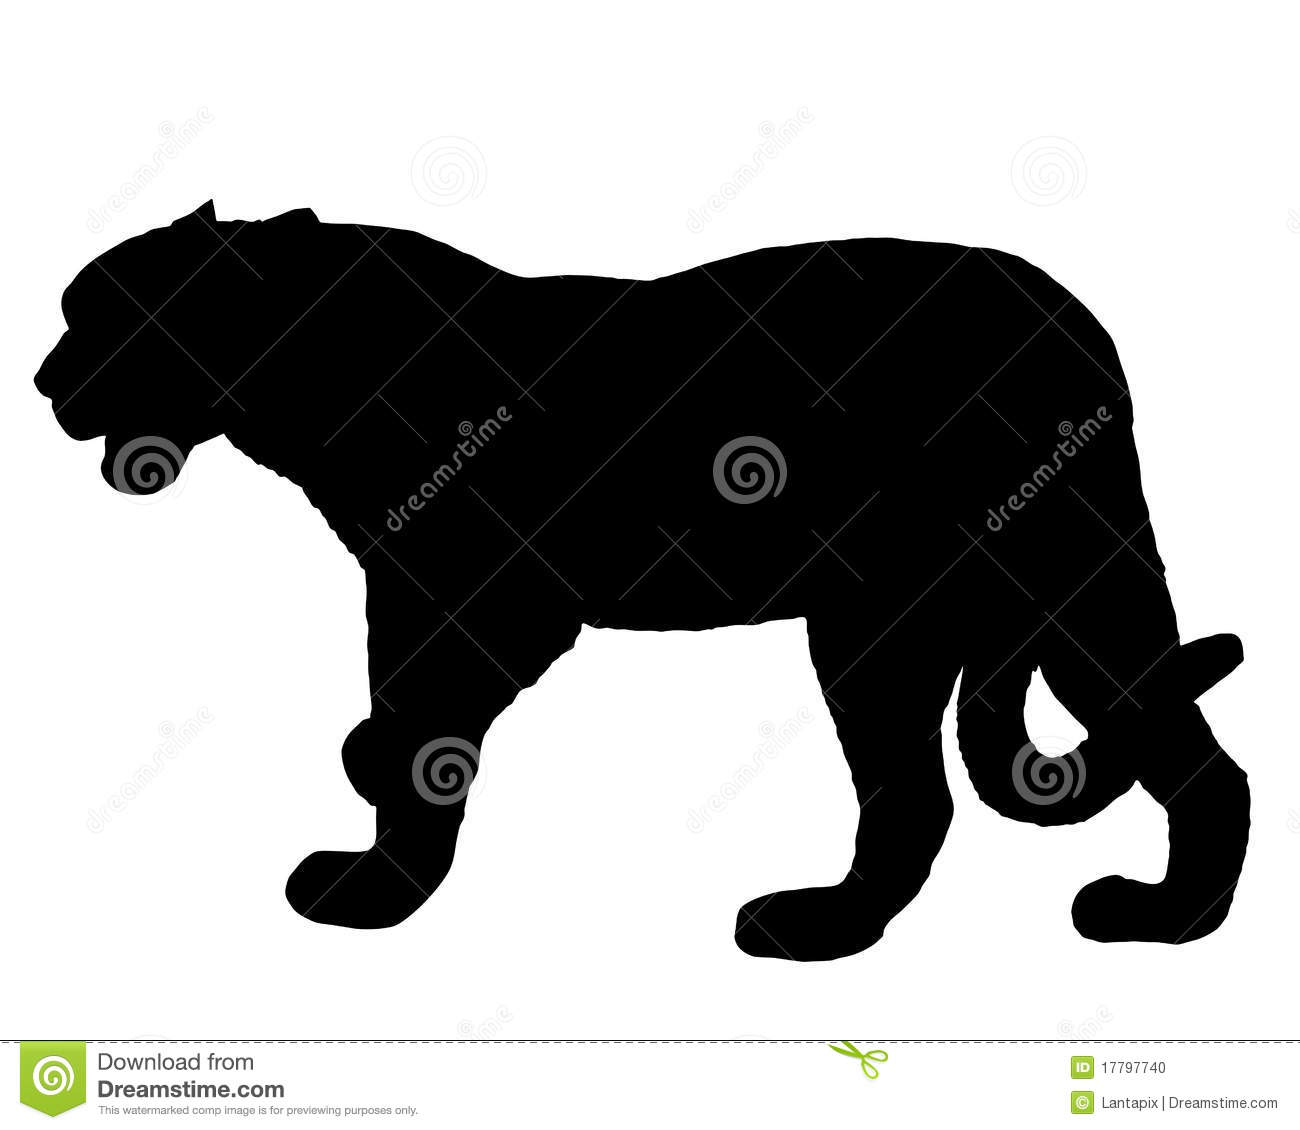 Detailed And Colorful Illustration Of Jaguar Silhouette